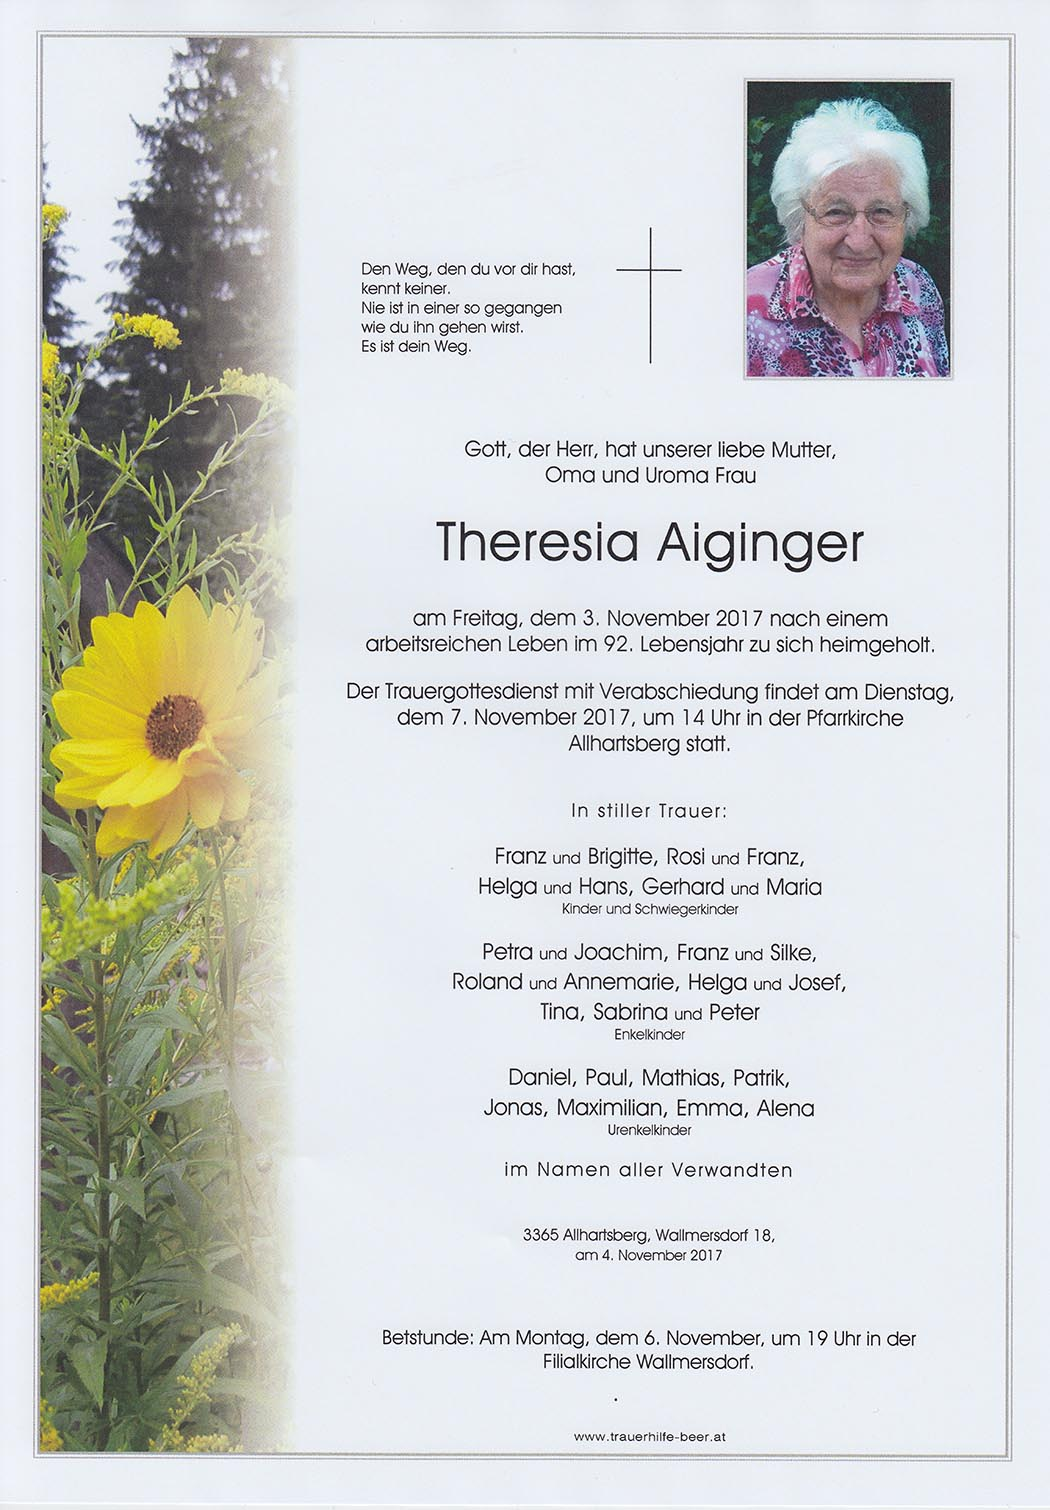 Theresia Aiginger